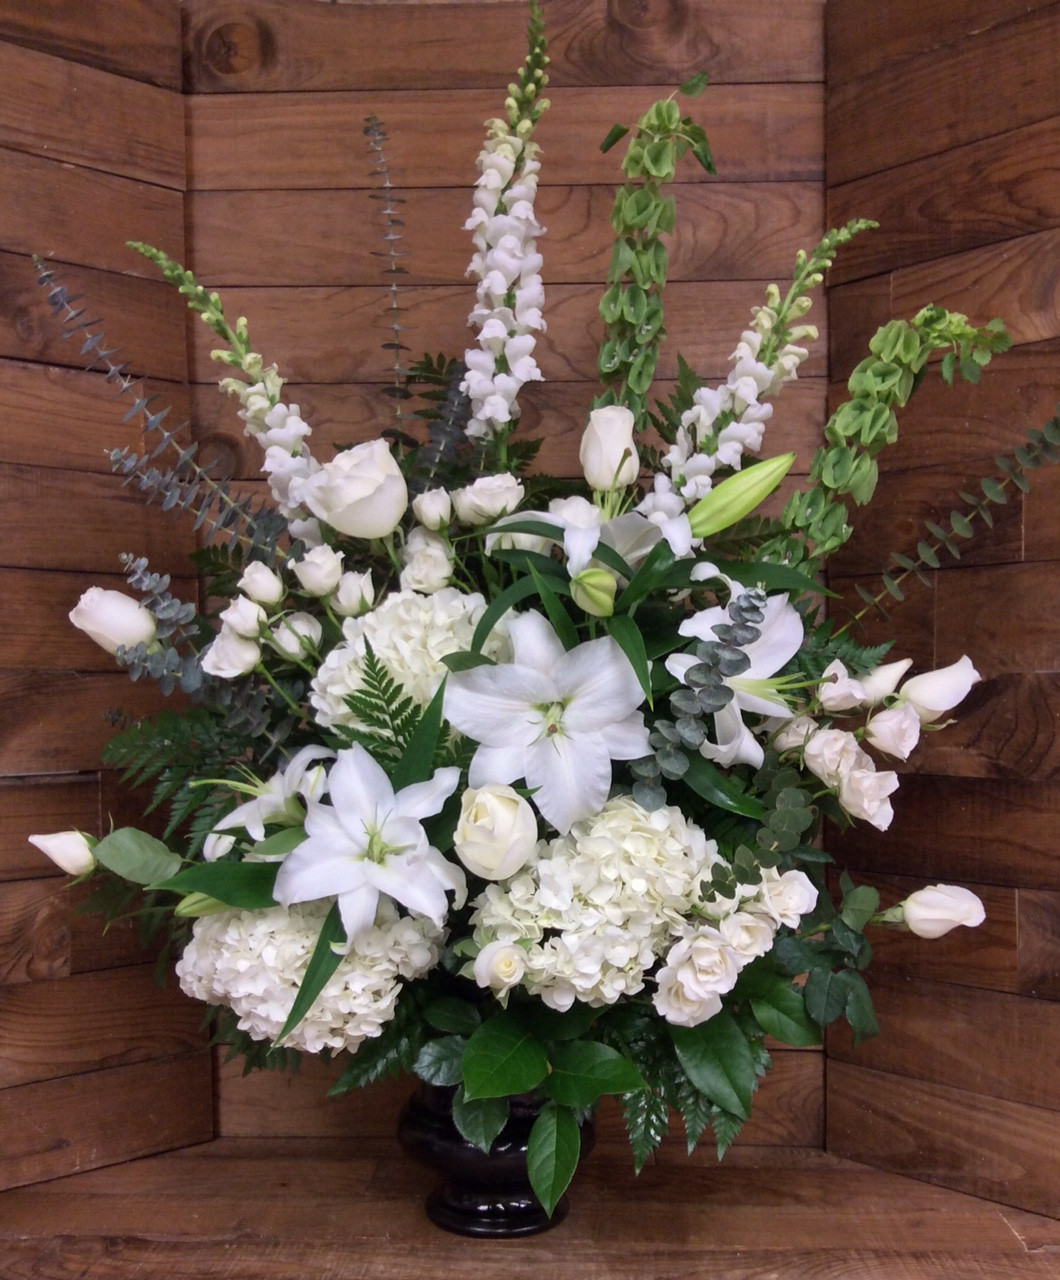 Elegant Sympathy Urn In Whites And Creams Centerville Florists